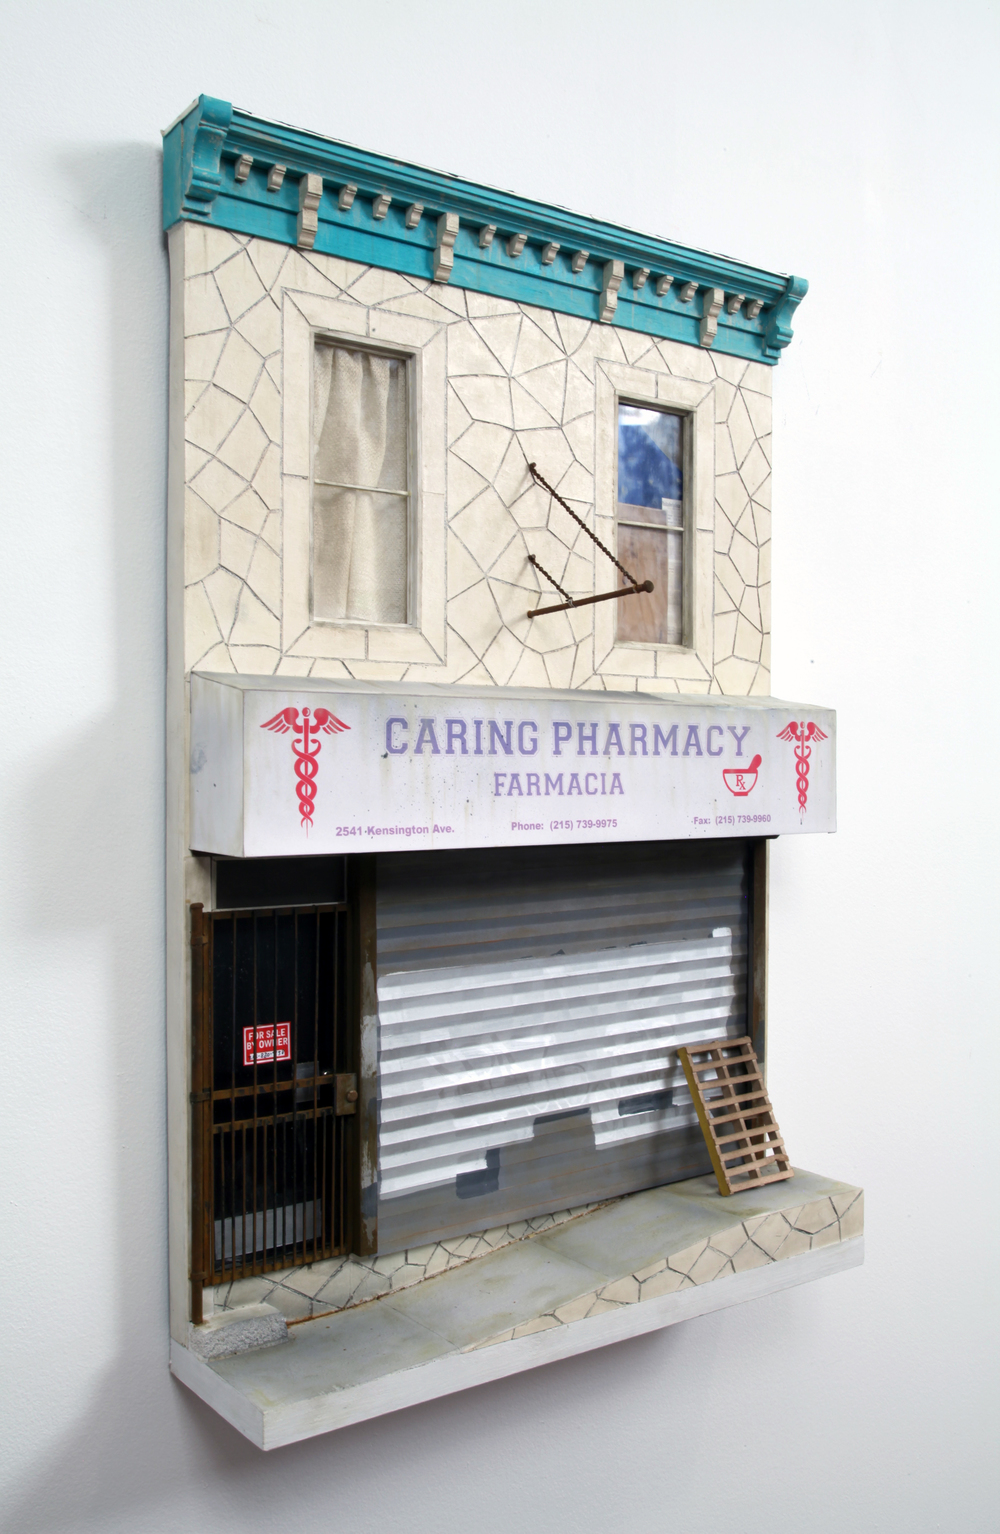 "Caring Pharmacy - 24"" x 16"" x 4"" - SOLD"